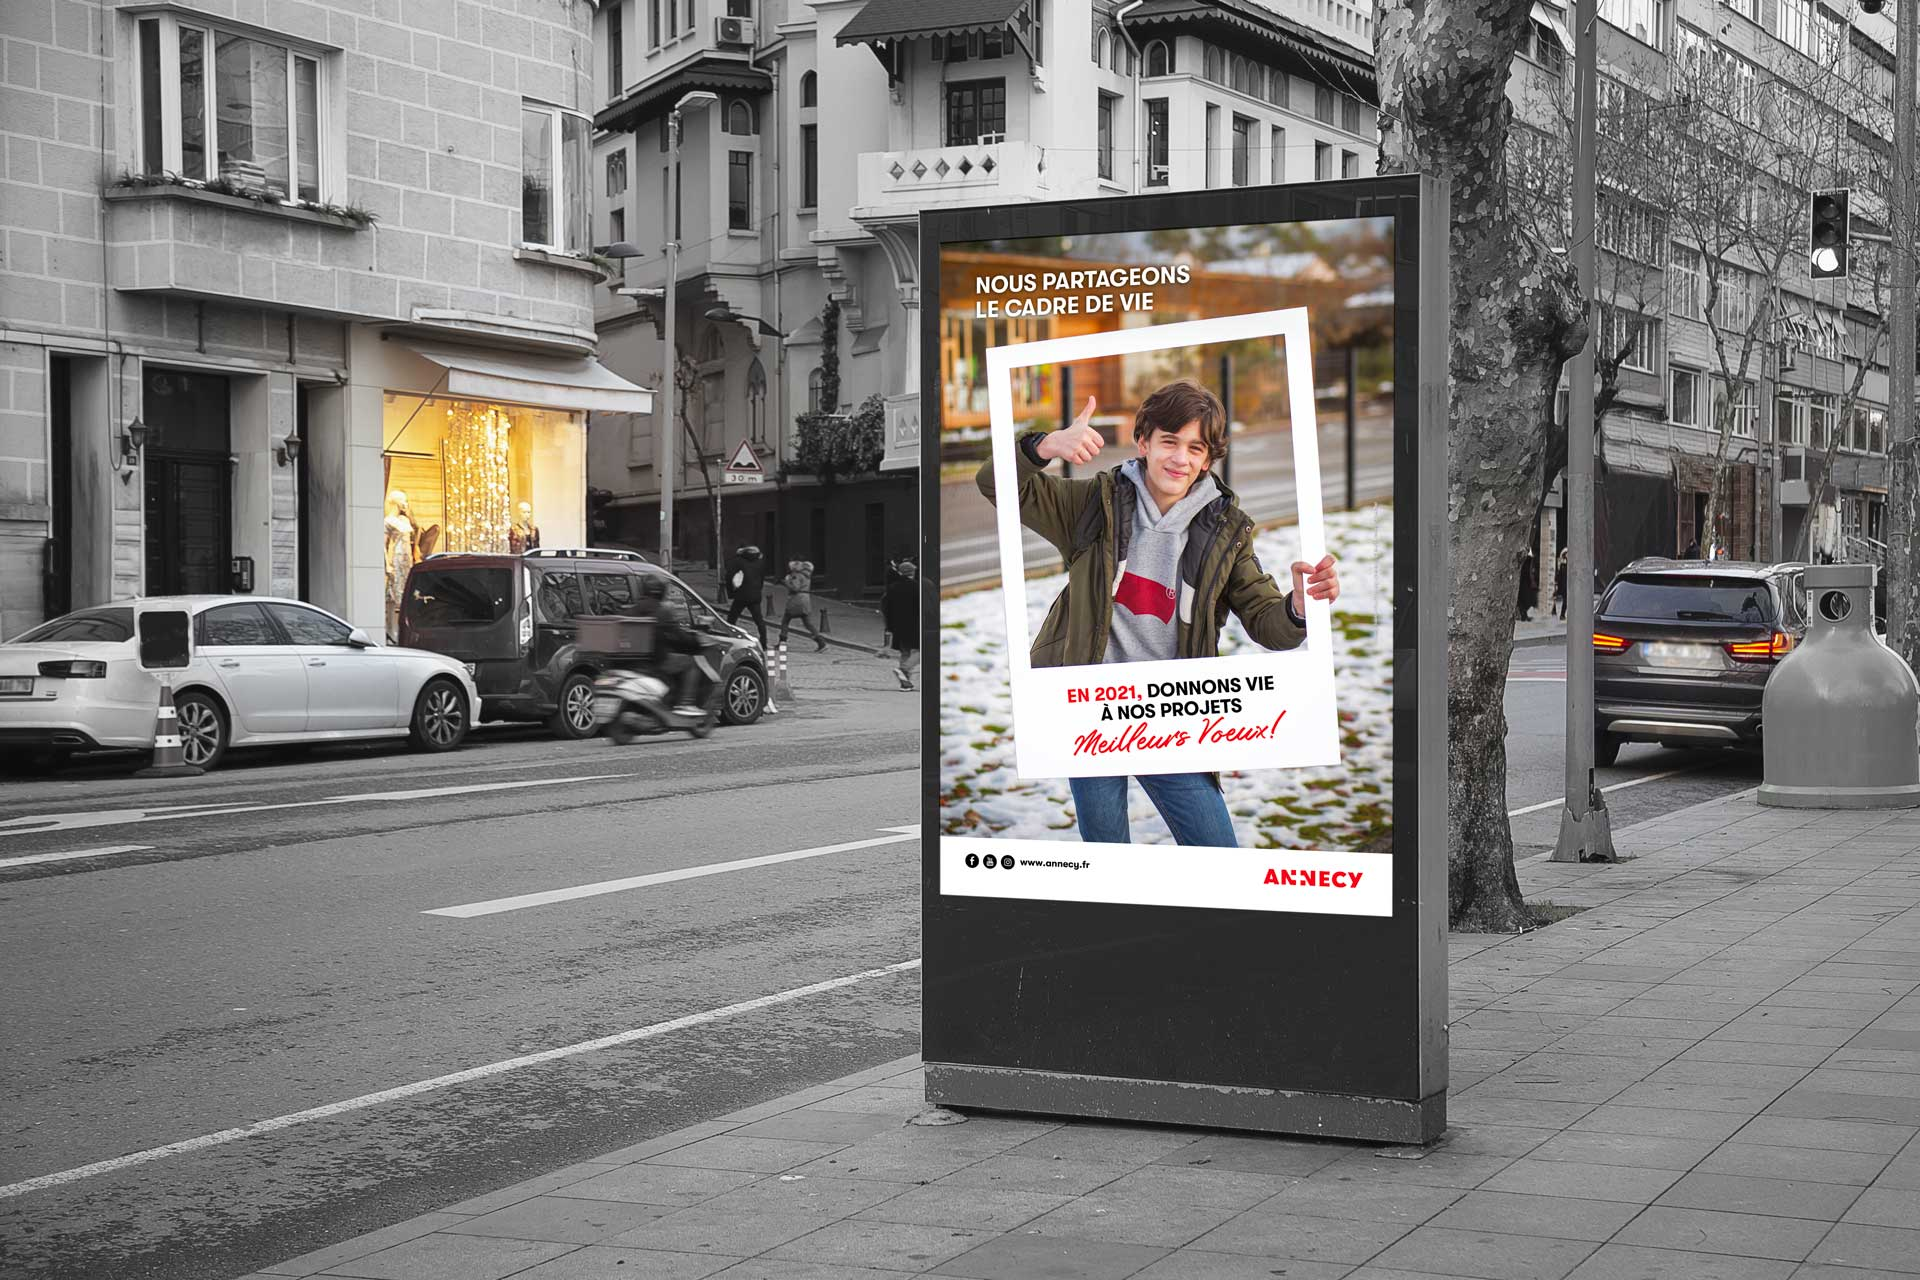 Campagne d'affichage Annecy